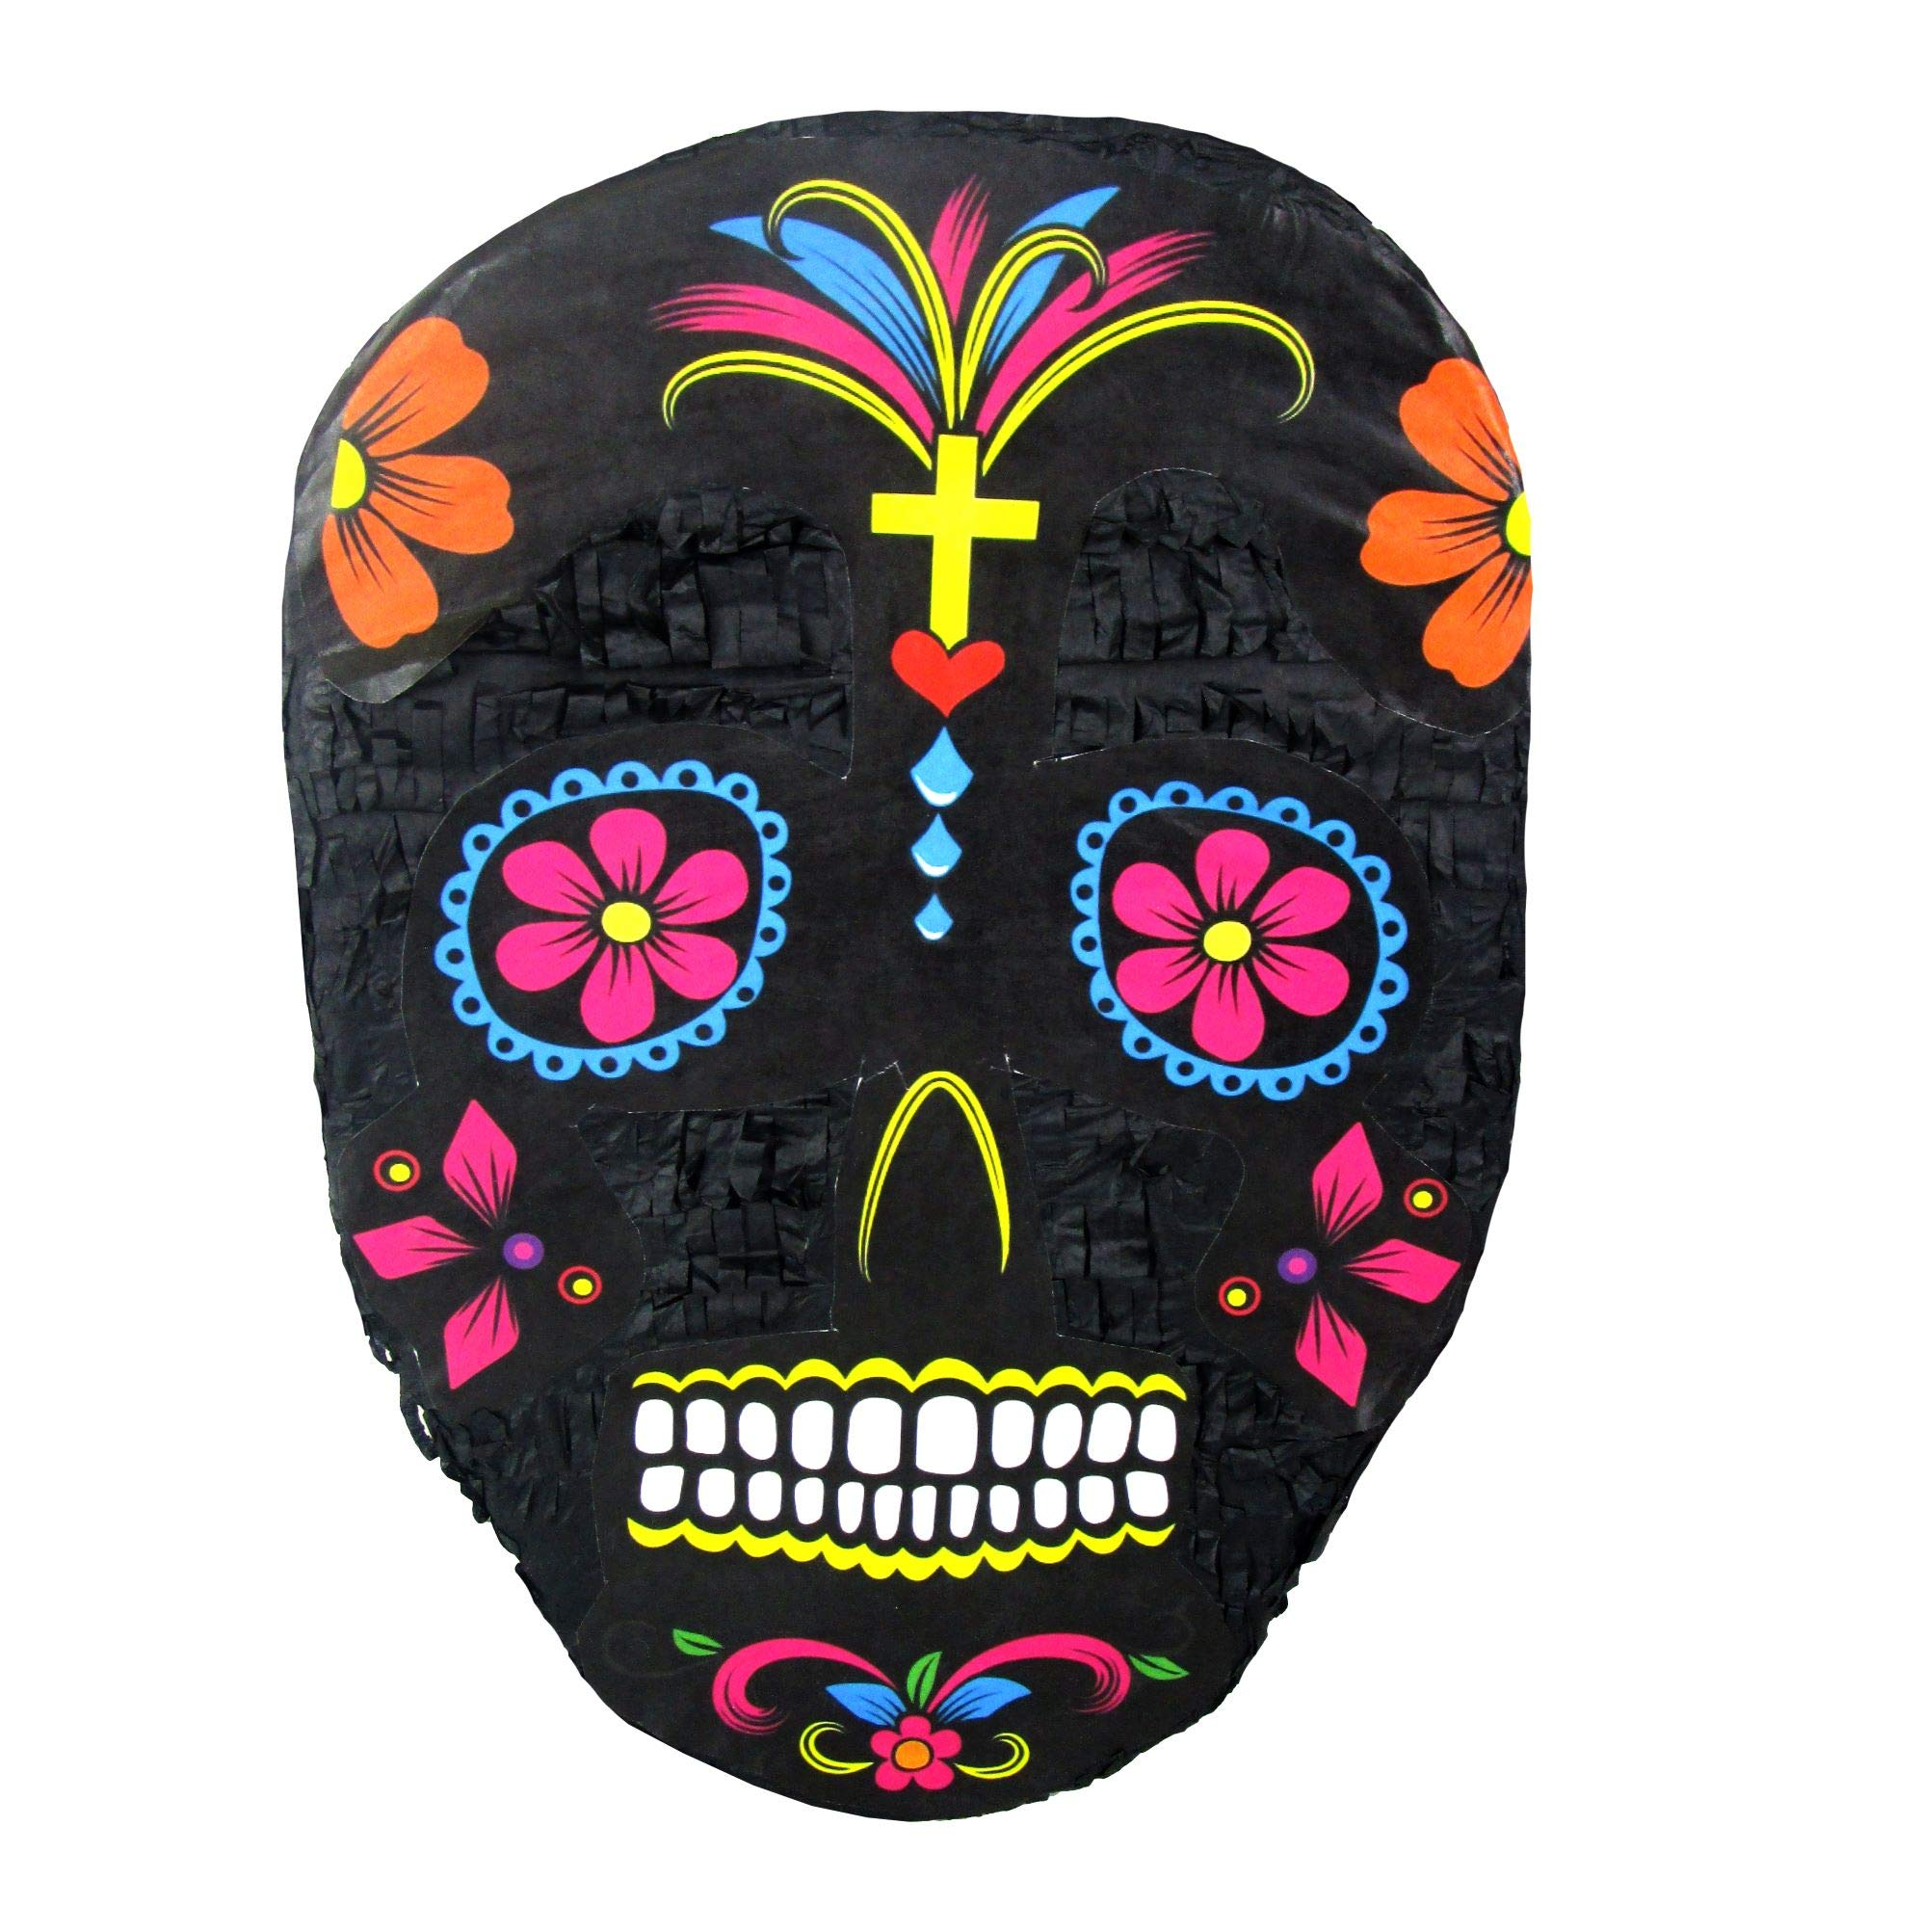 Black Sugar Skull Pinata, Day of the Dead Party Game, Halloween Prop and Decoration by Pinatas